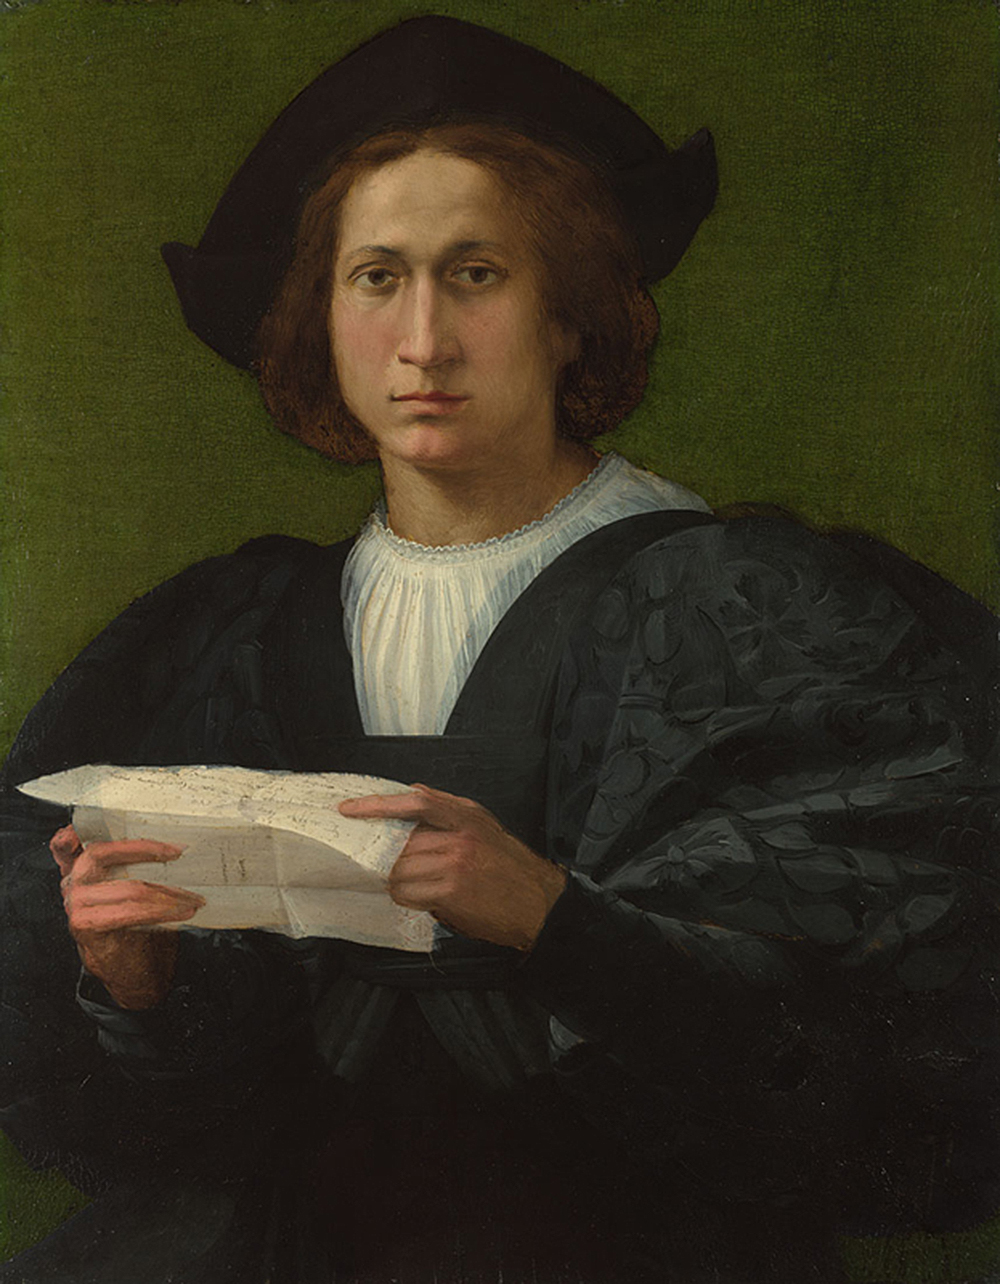 Portrait of a Young Man Holding a Letter, by Rosso Fiorentino, 1518. National Gallery, London, bought, with the generous support of the George Beaumont Group and a number of gifts in wills including a legacy from Mrs. Olive Brazdzionis, 2000.